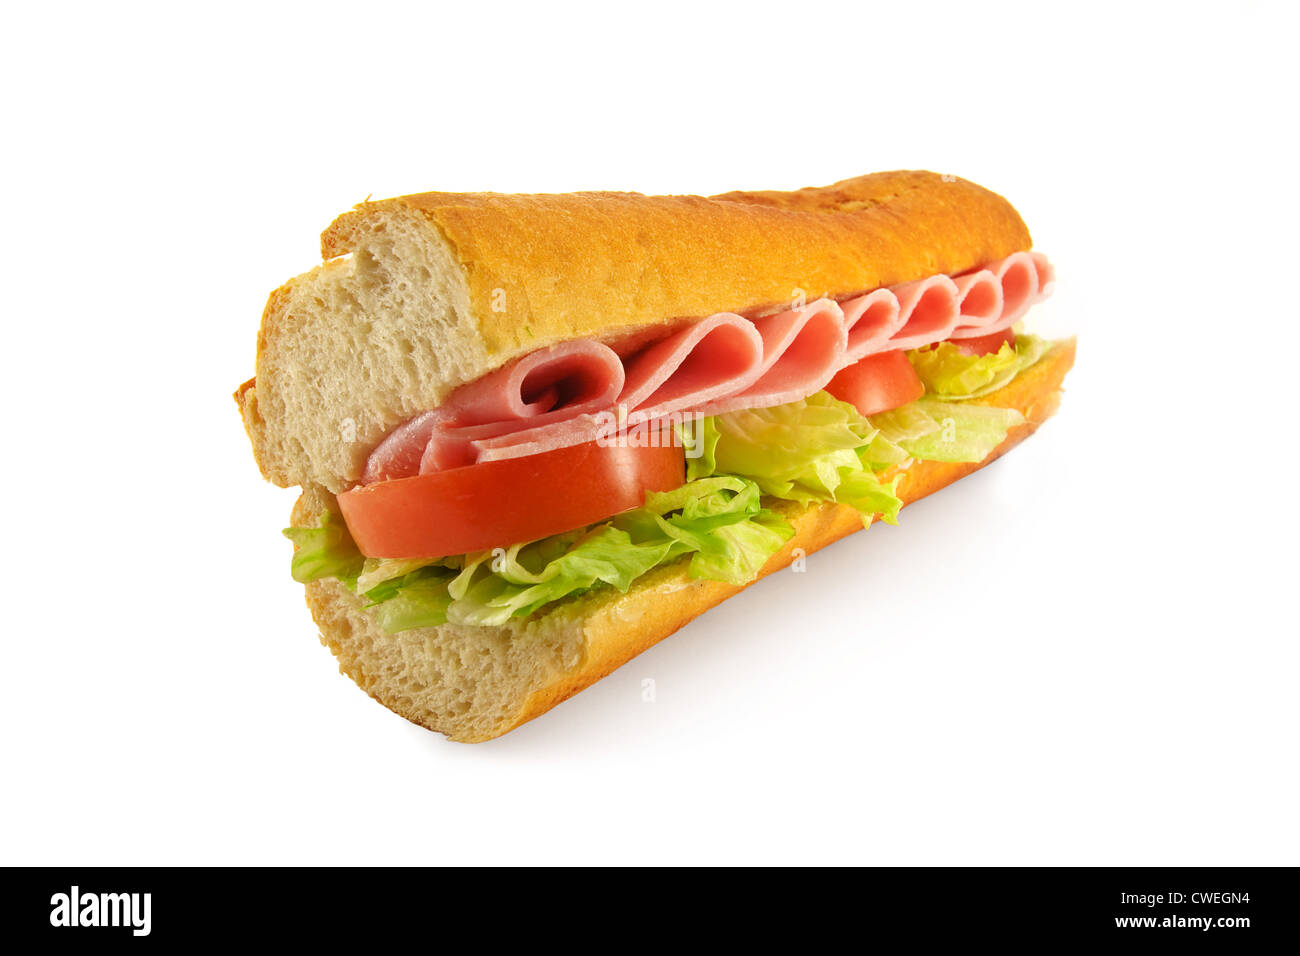 A homemade sandwich with one of the most popular fillings ham salad, made with a freshly baked french bread baguette - Stock Image